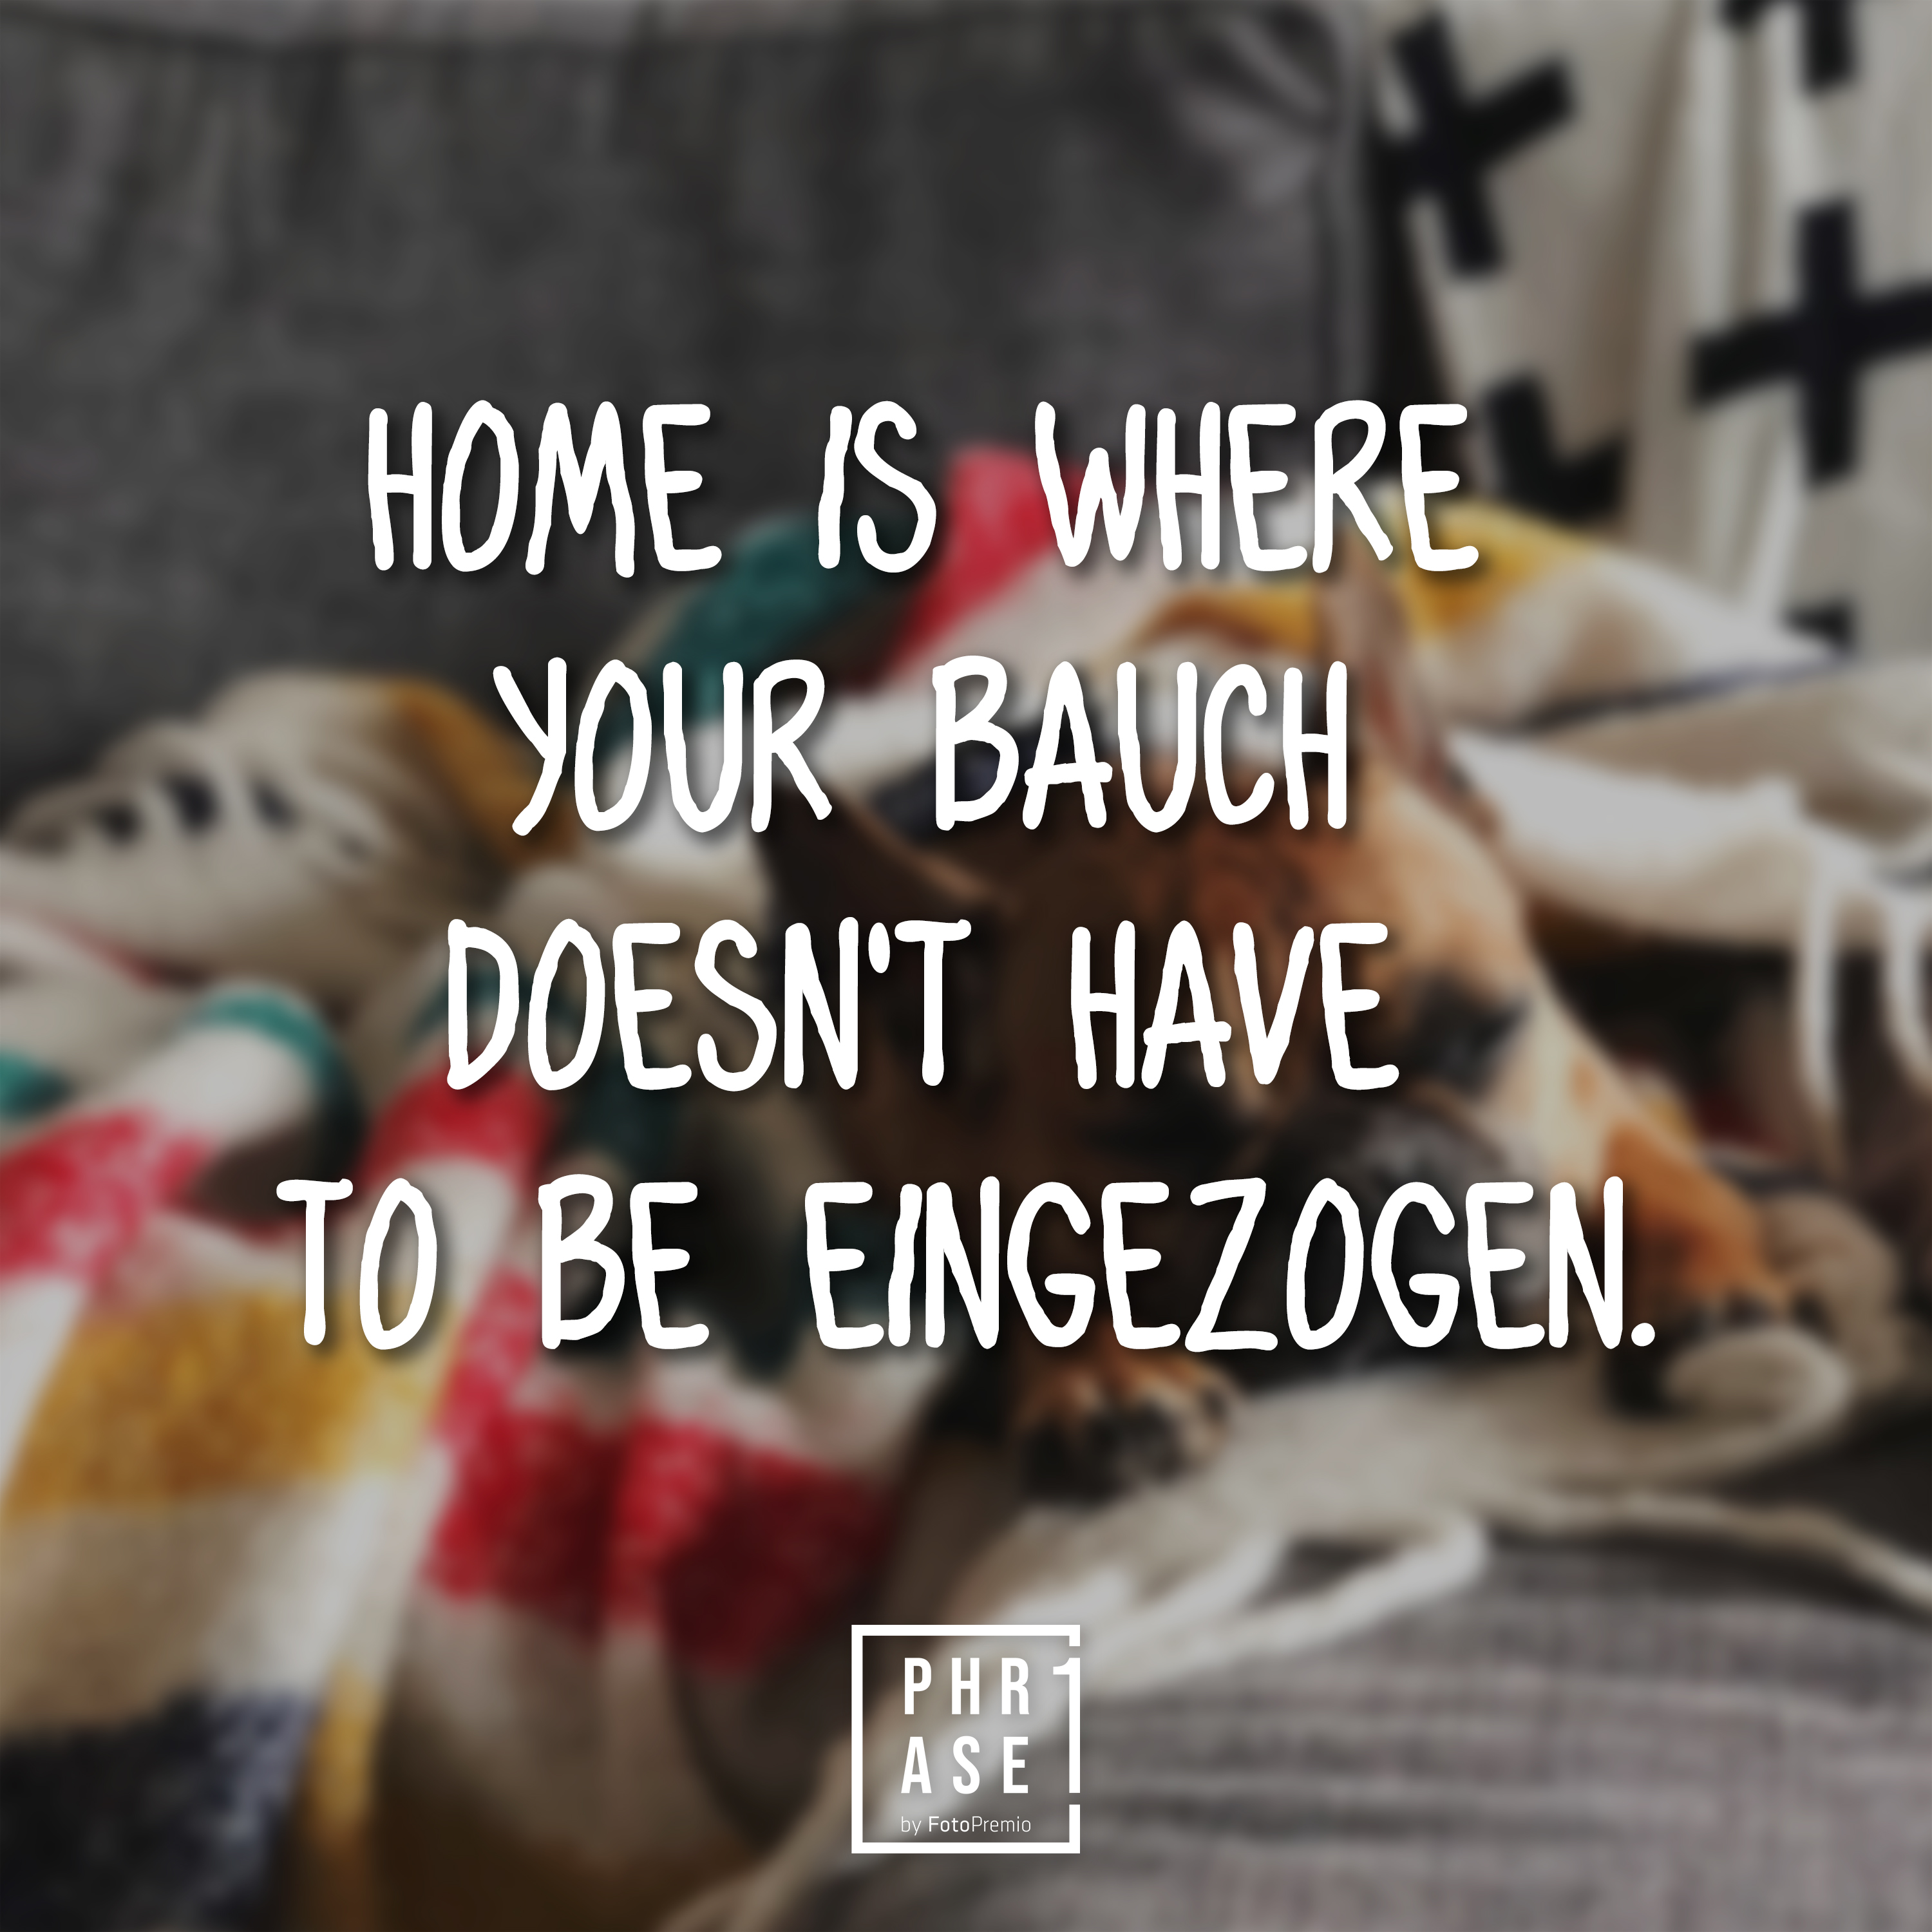 Home is where your Bauch doesn't have to be eingezogen.